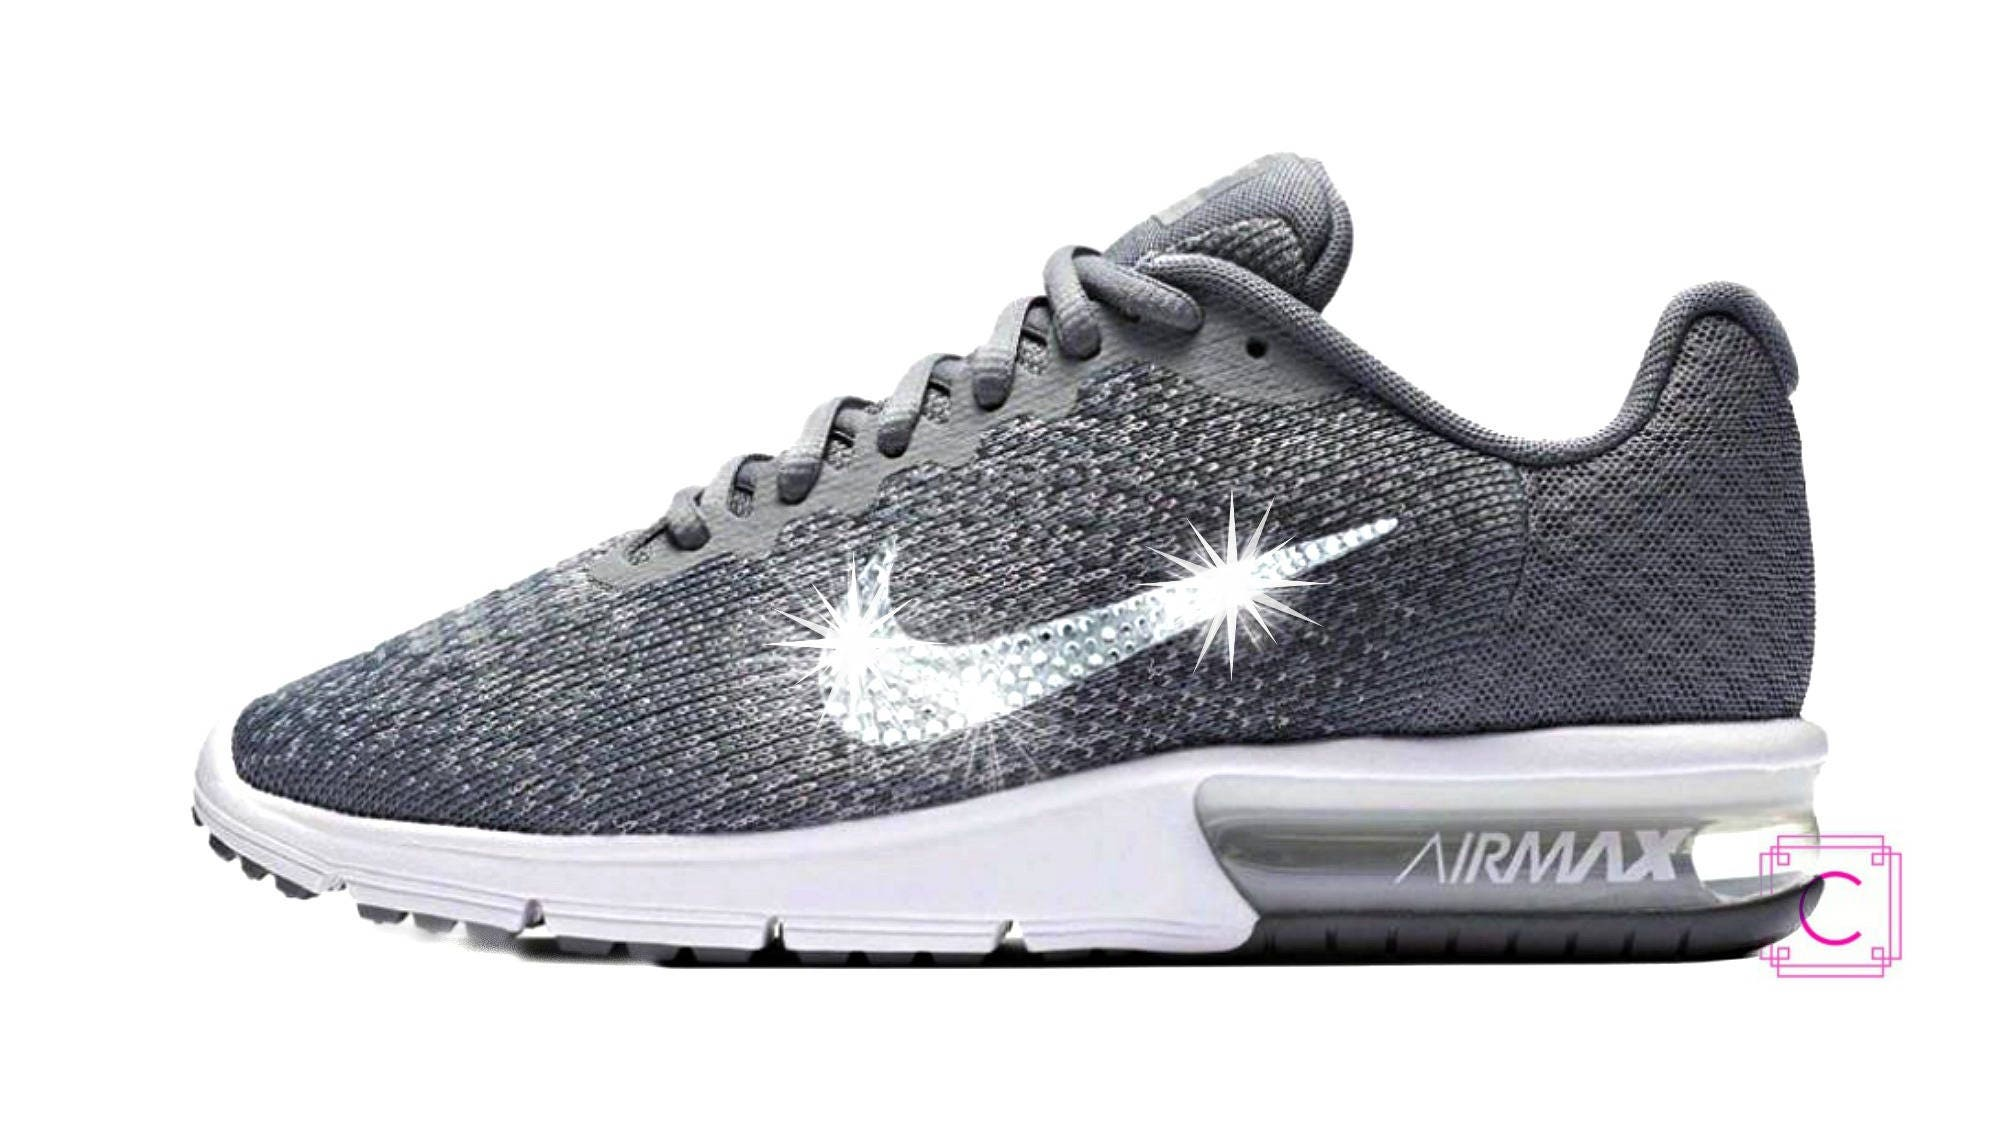 ... new style 8f2fc 89082 Last pair sz 10 Womens Bling Nike Air Max Sequent  ... 6ca161ca9def